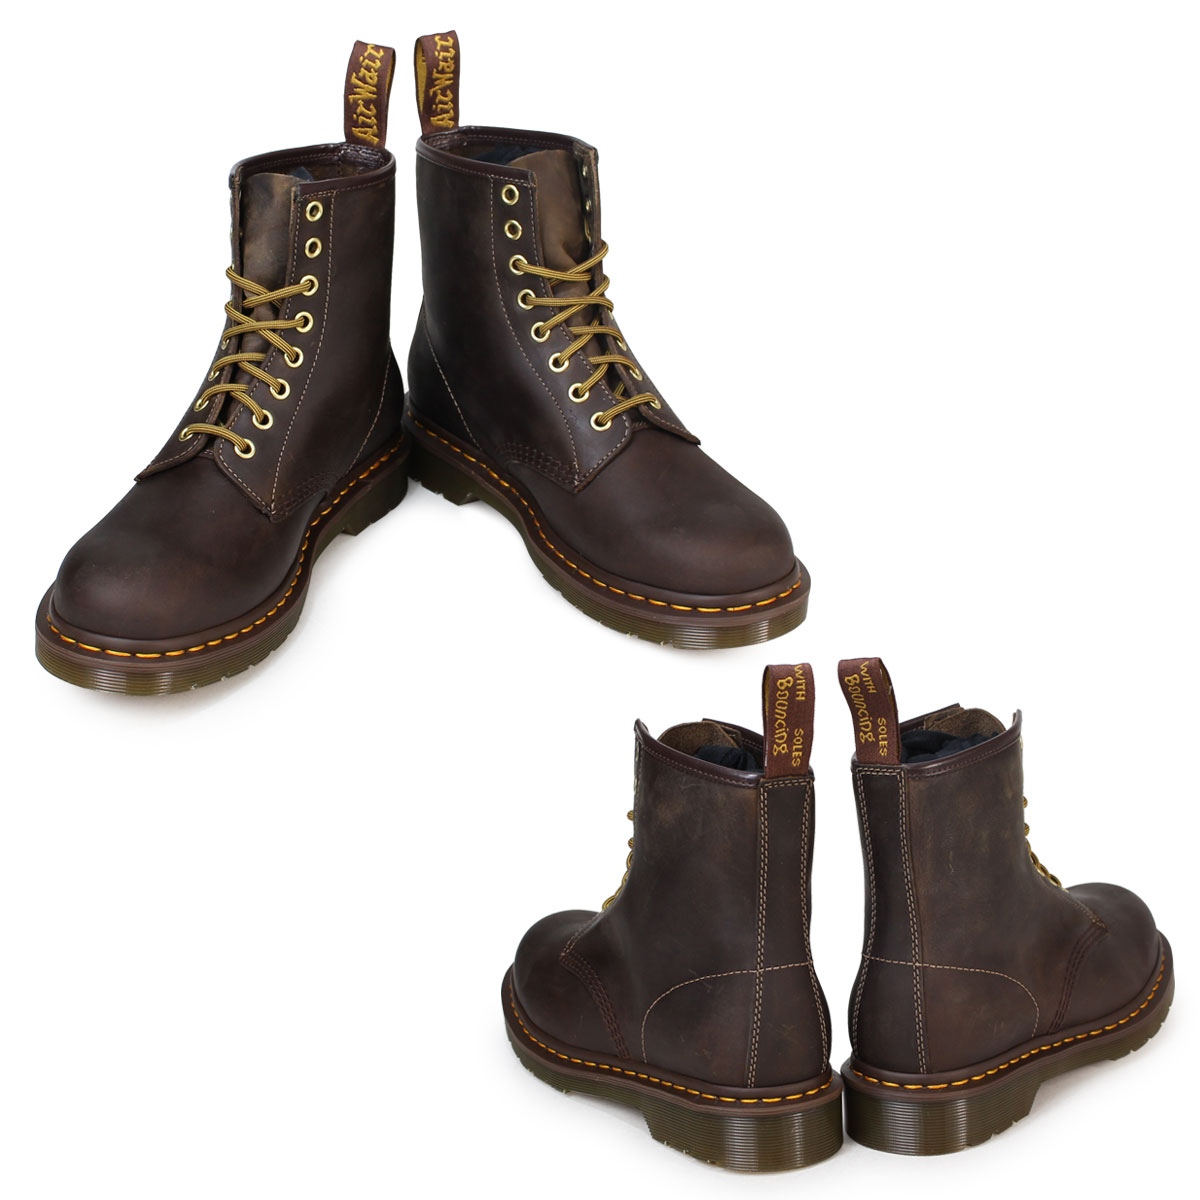 Point 2 x Dr. Martens Dr.Martens 1460 8 hole boots MATERIAL UPDATES leather mens R11822200 8EYE BOOTS Crazy Horse Brown [regular] P06Dec14